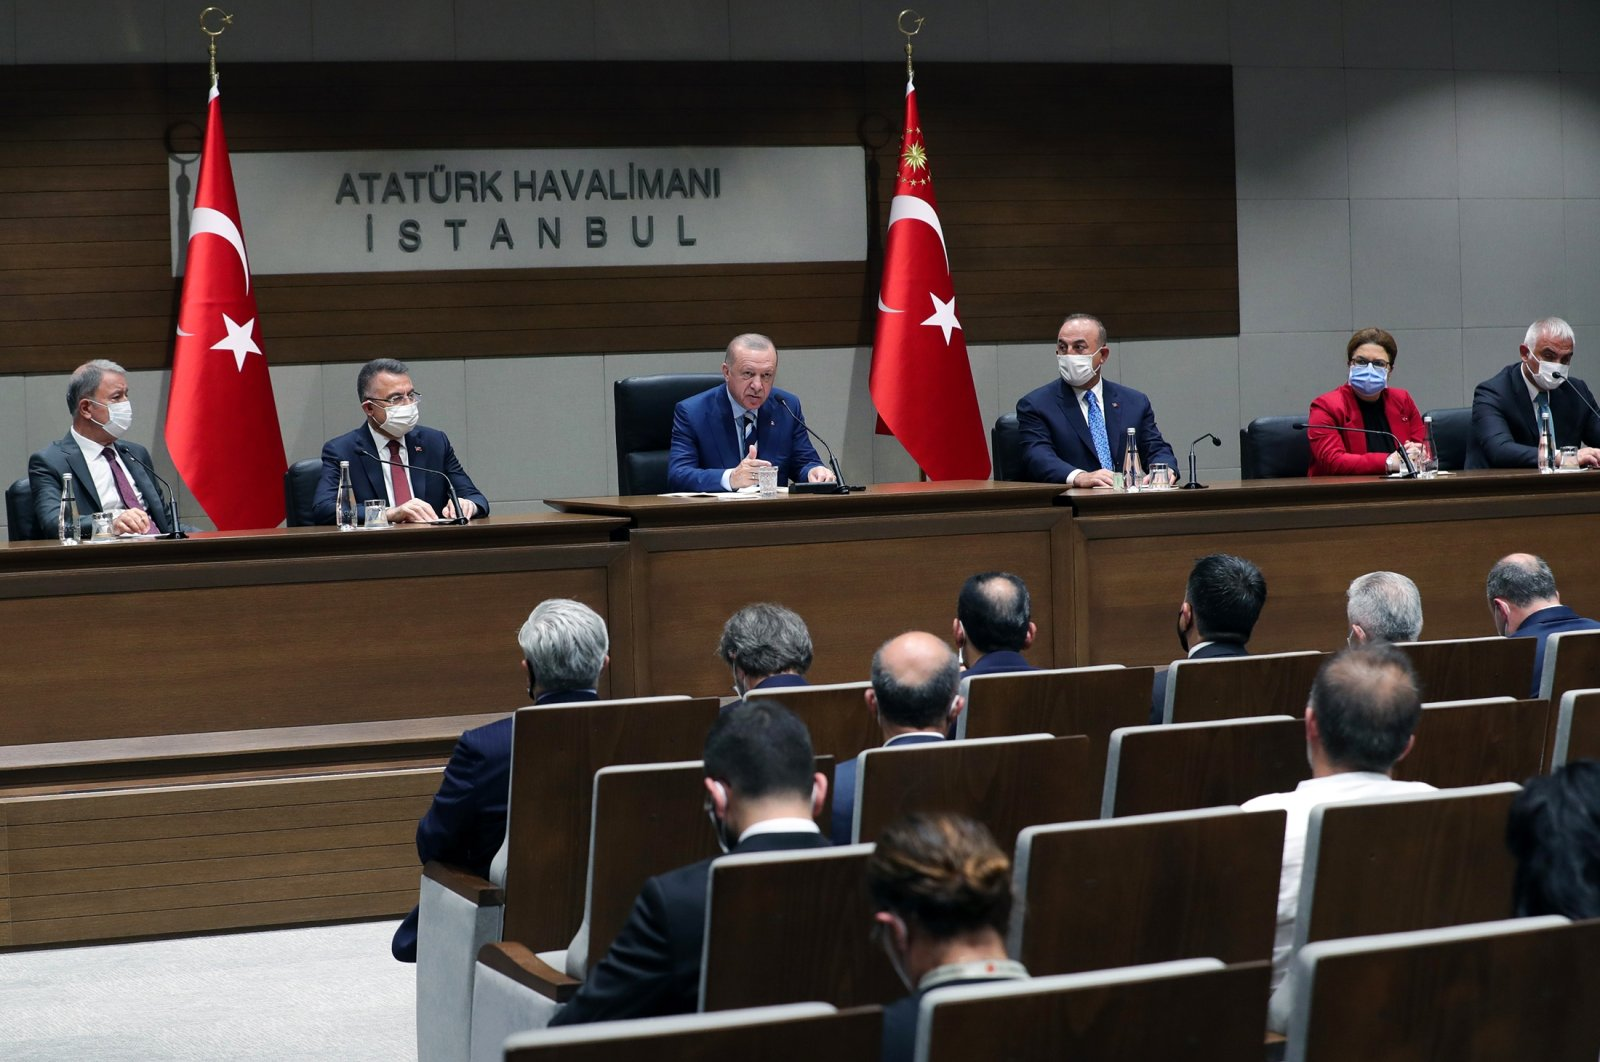 Turkish President Recep Tayyip Erdoğan speaking at a news conference before departing to the Turkish Republic of Northern Cyprus in Istanbul, Turkey, July 19, 2021. (DHA Photo)